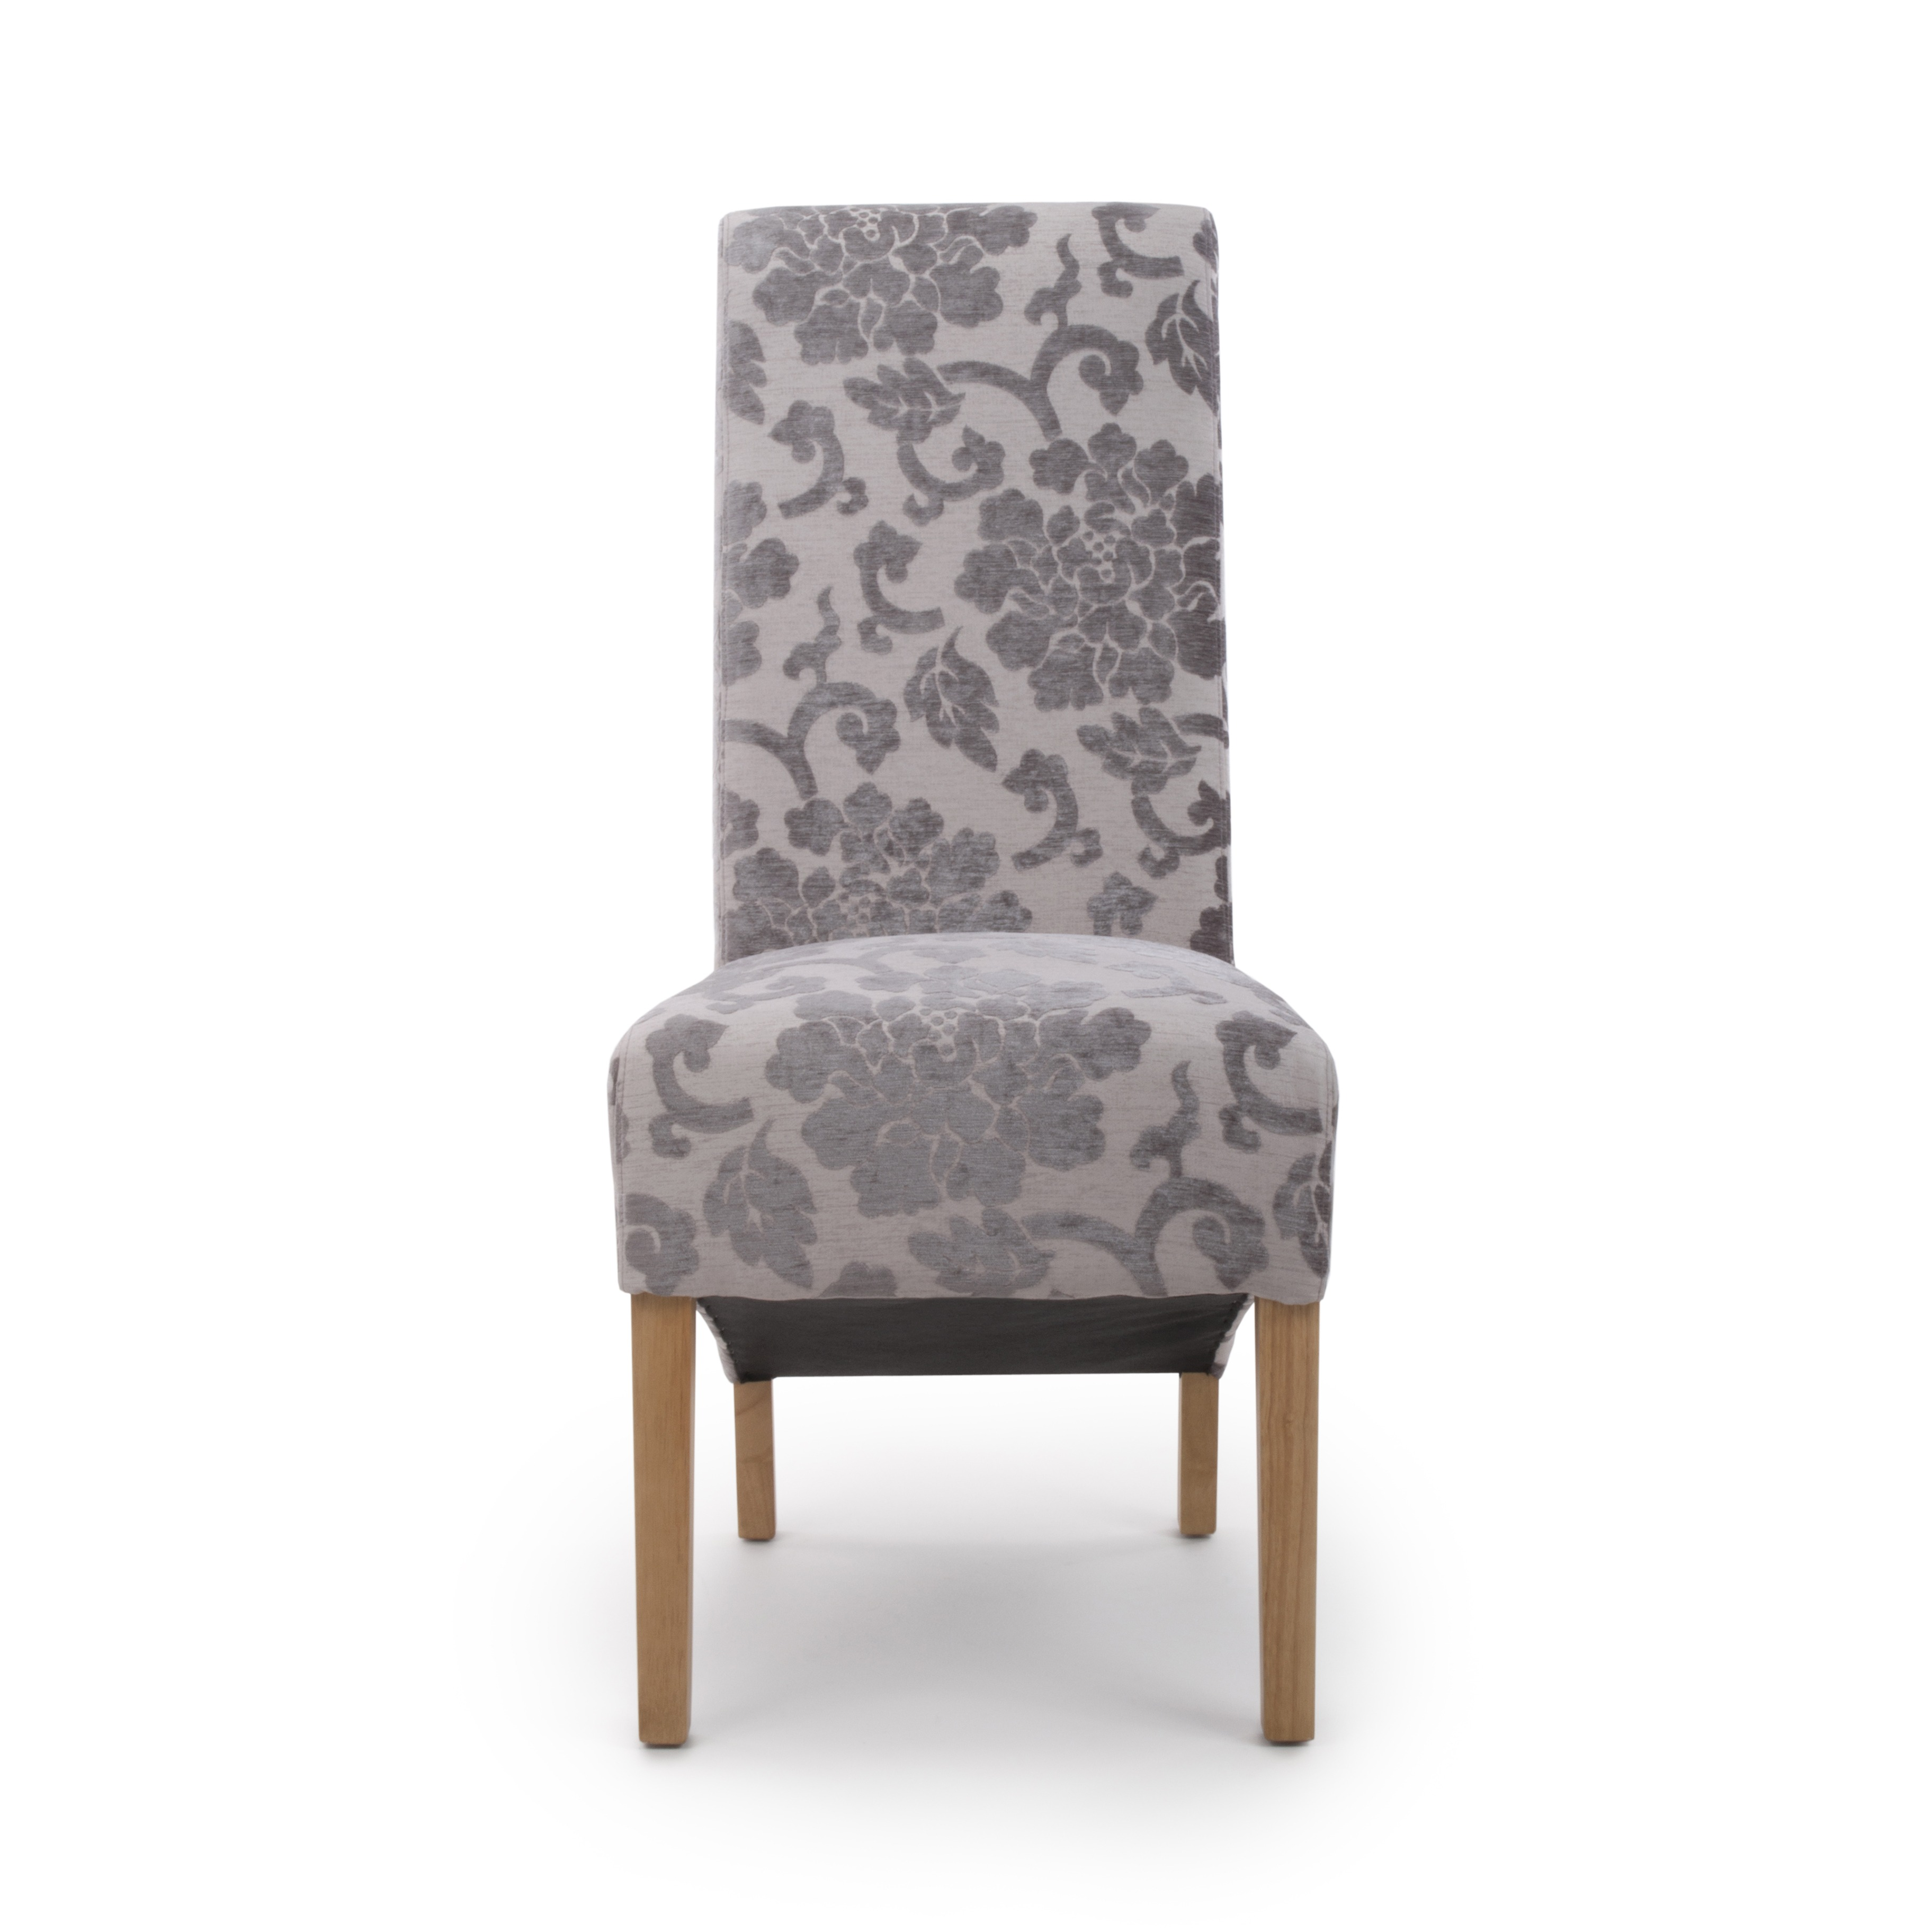 Krista Baroque Mink Floral Velvet Fabric Dining Chairs